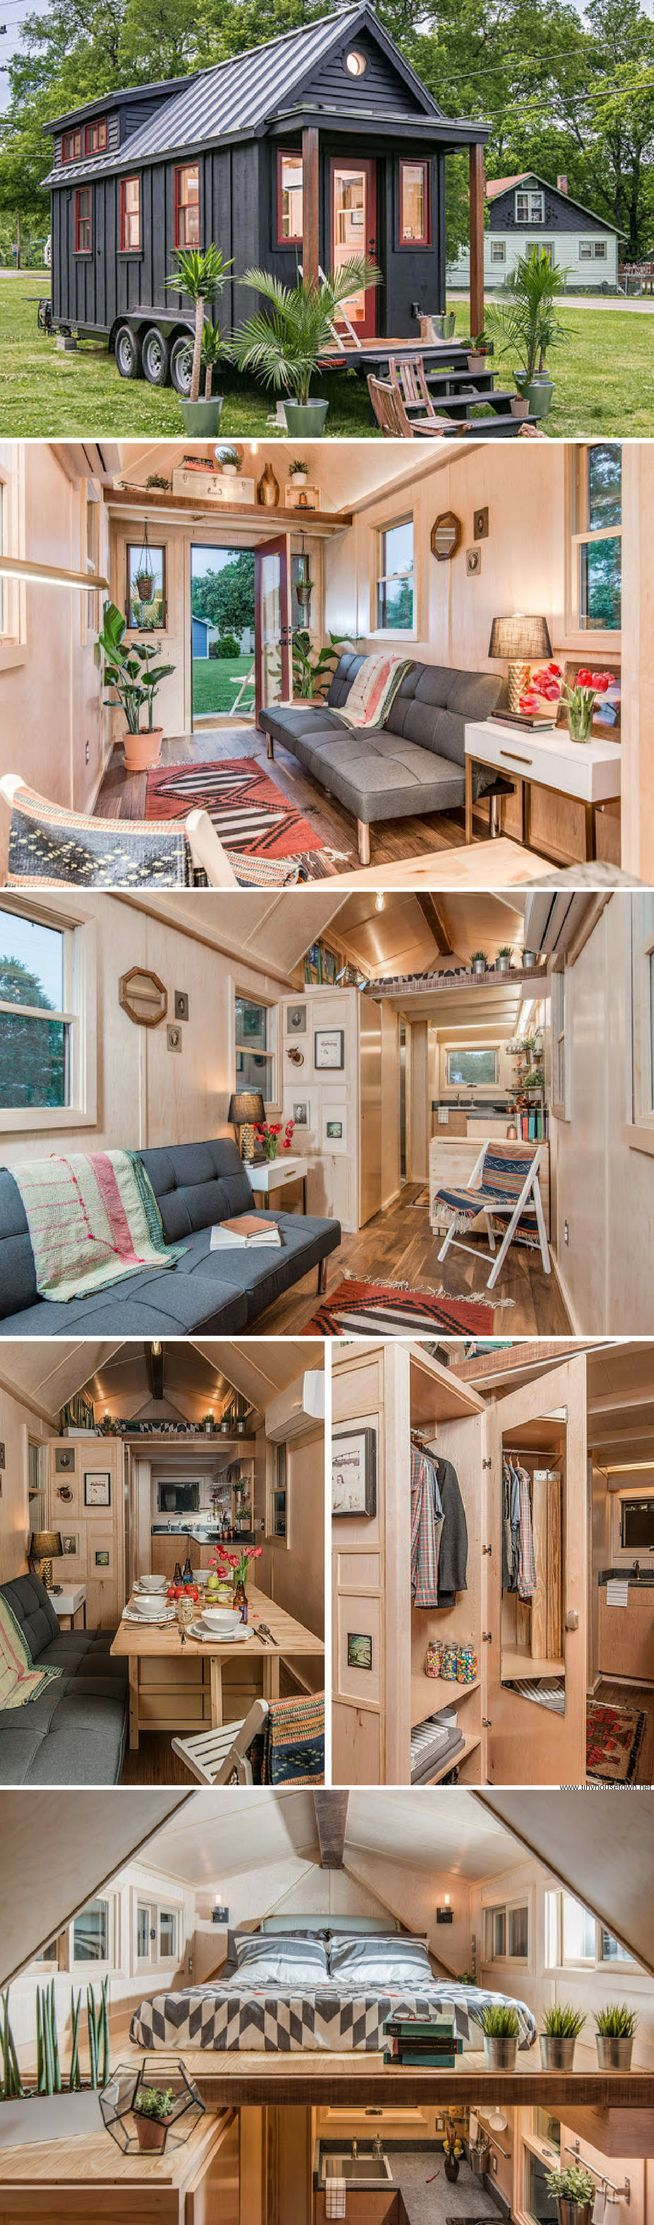 121 best Tiny Eco Spaces images on Pinterest Tiny house cabin